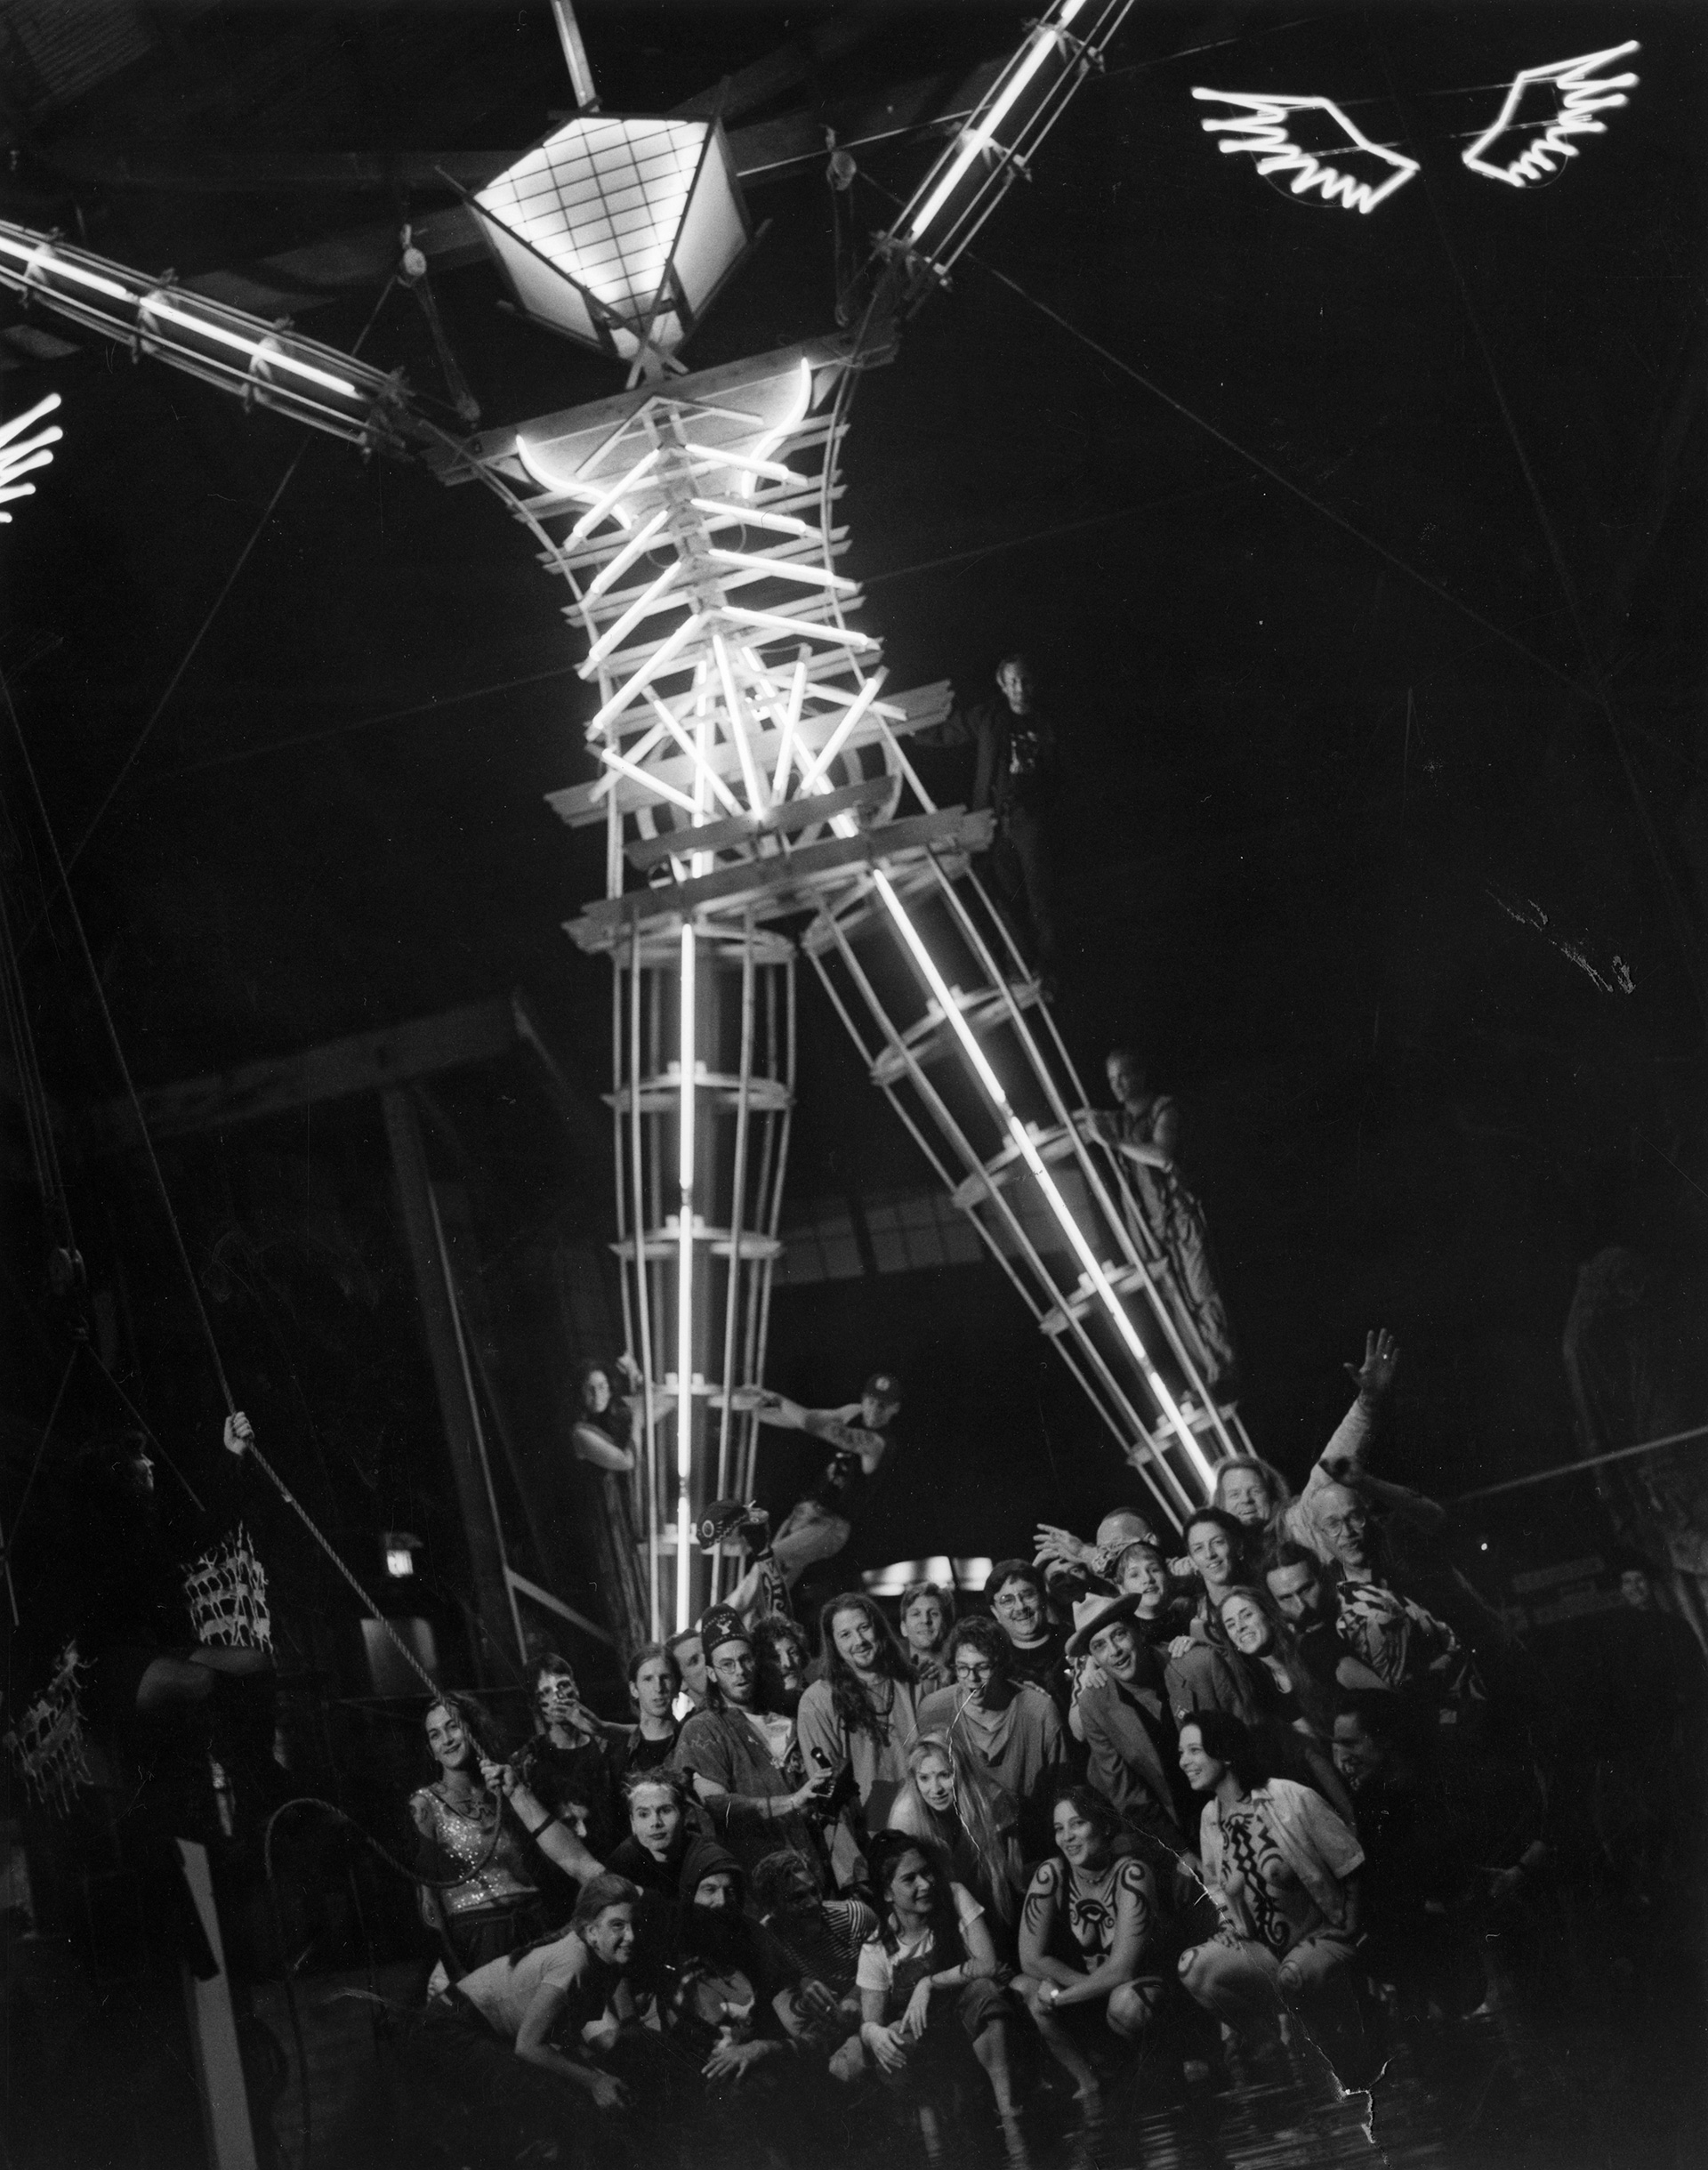 Photograph by Leo Nash of the Man following its construction in the San Francisco Bay Area,1995| No Spectators: The Art of Burning Man | Oakland Museum of California | STIRworld